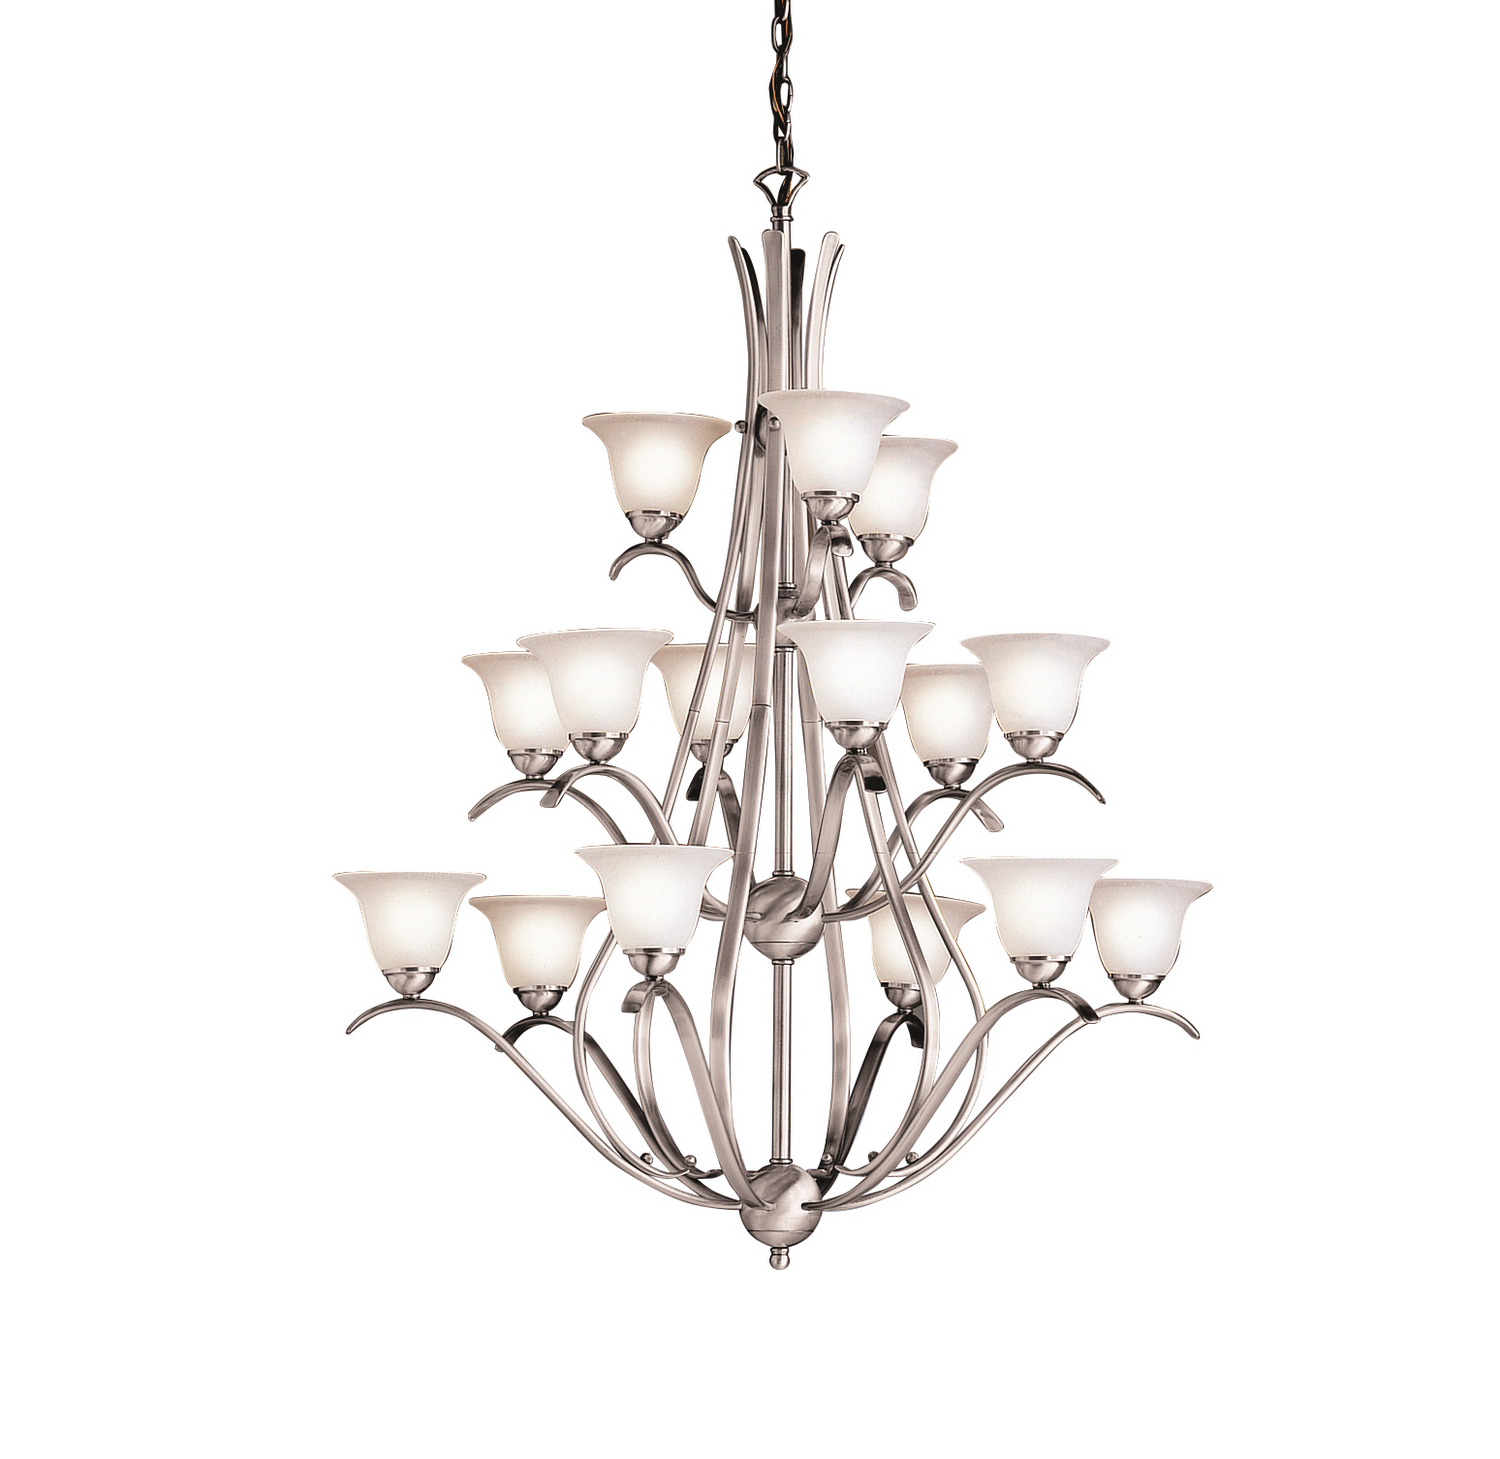 15 Light Chandelier from the Dover collection by Kichler 2523NI